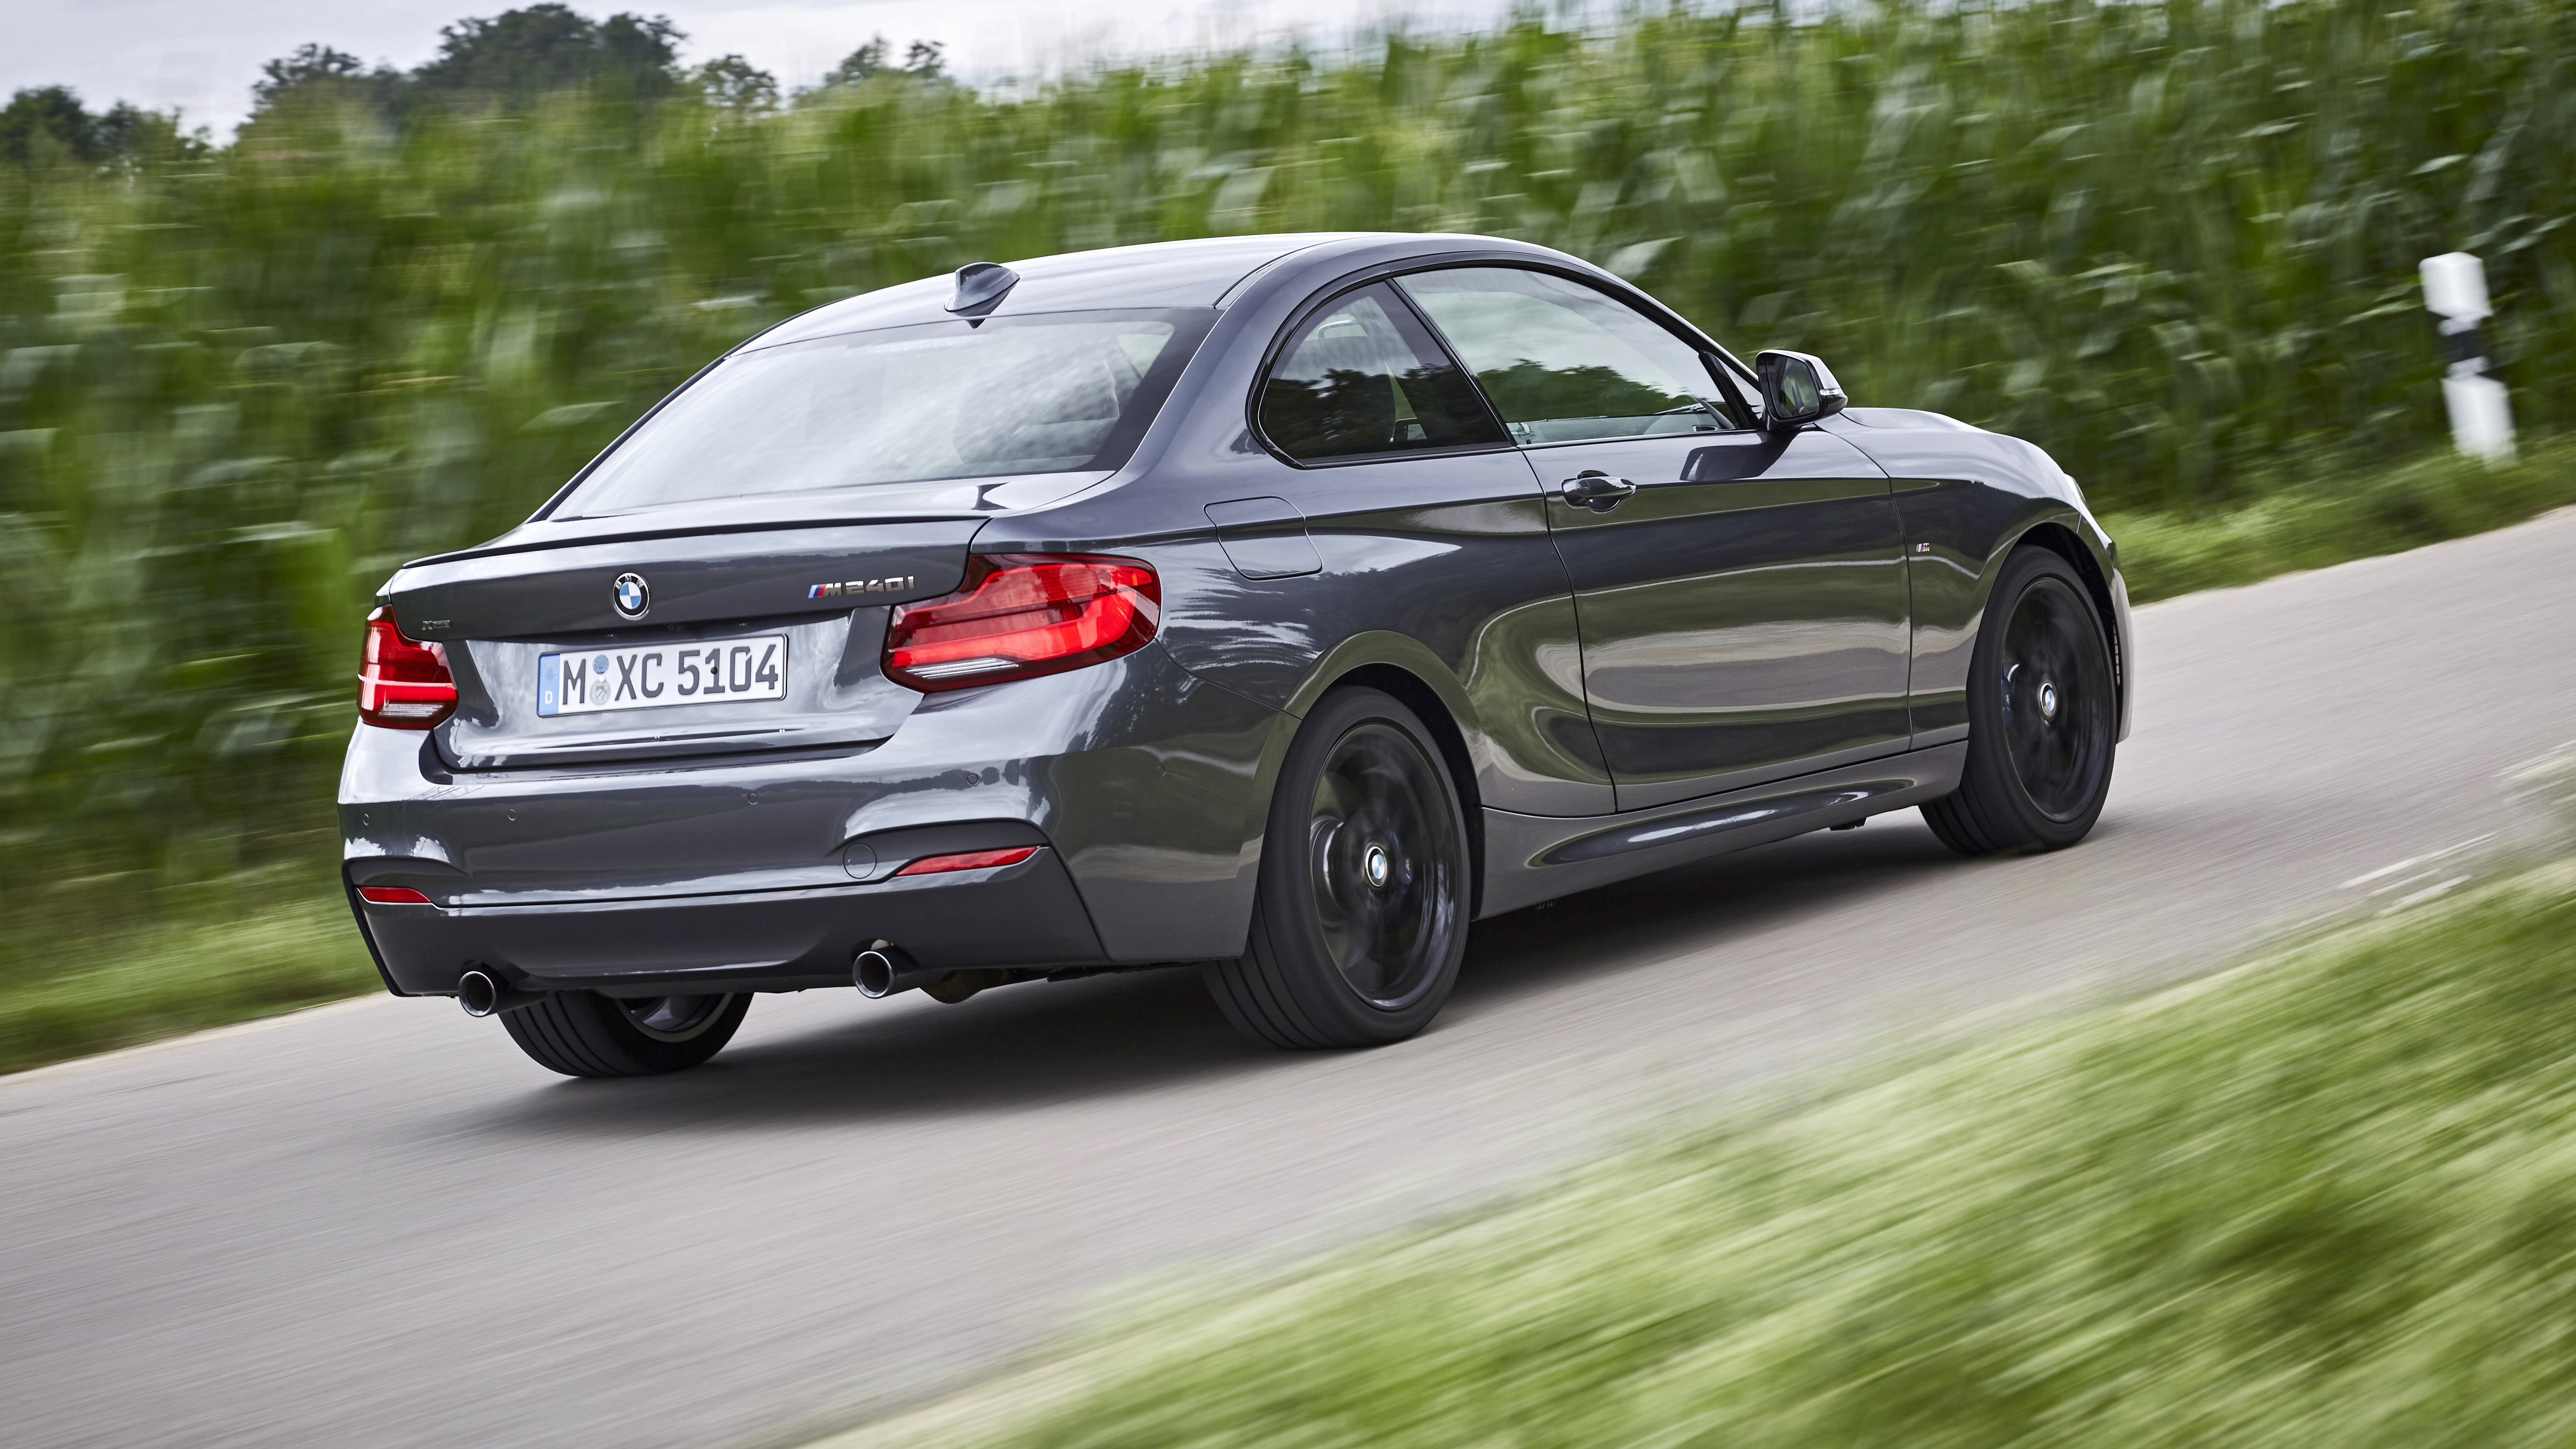 bmw m240i xdrive review 335bhp awd coupe tested top gear. Black Bedroom Furniture Sets. Home Design Ideas